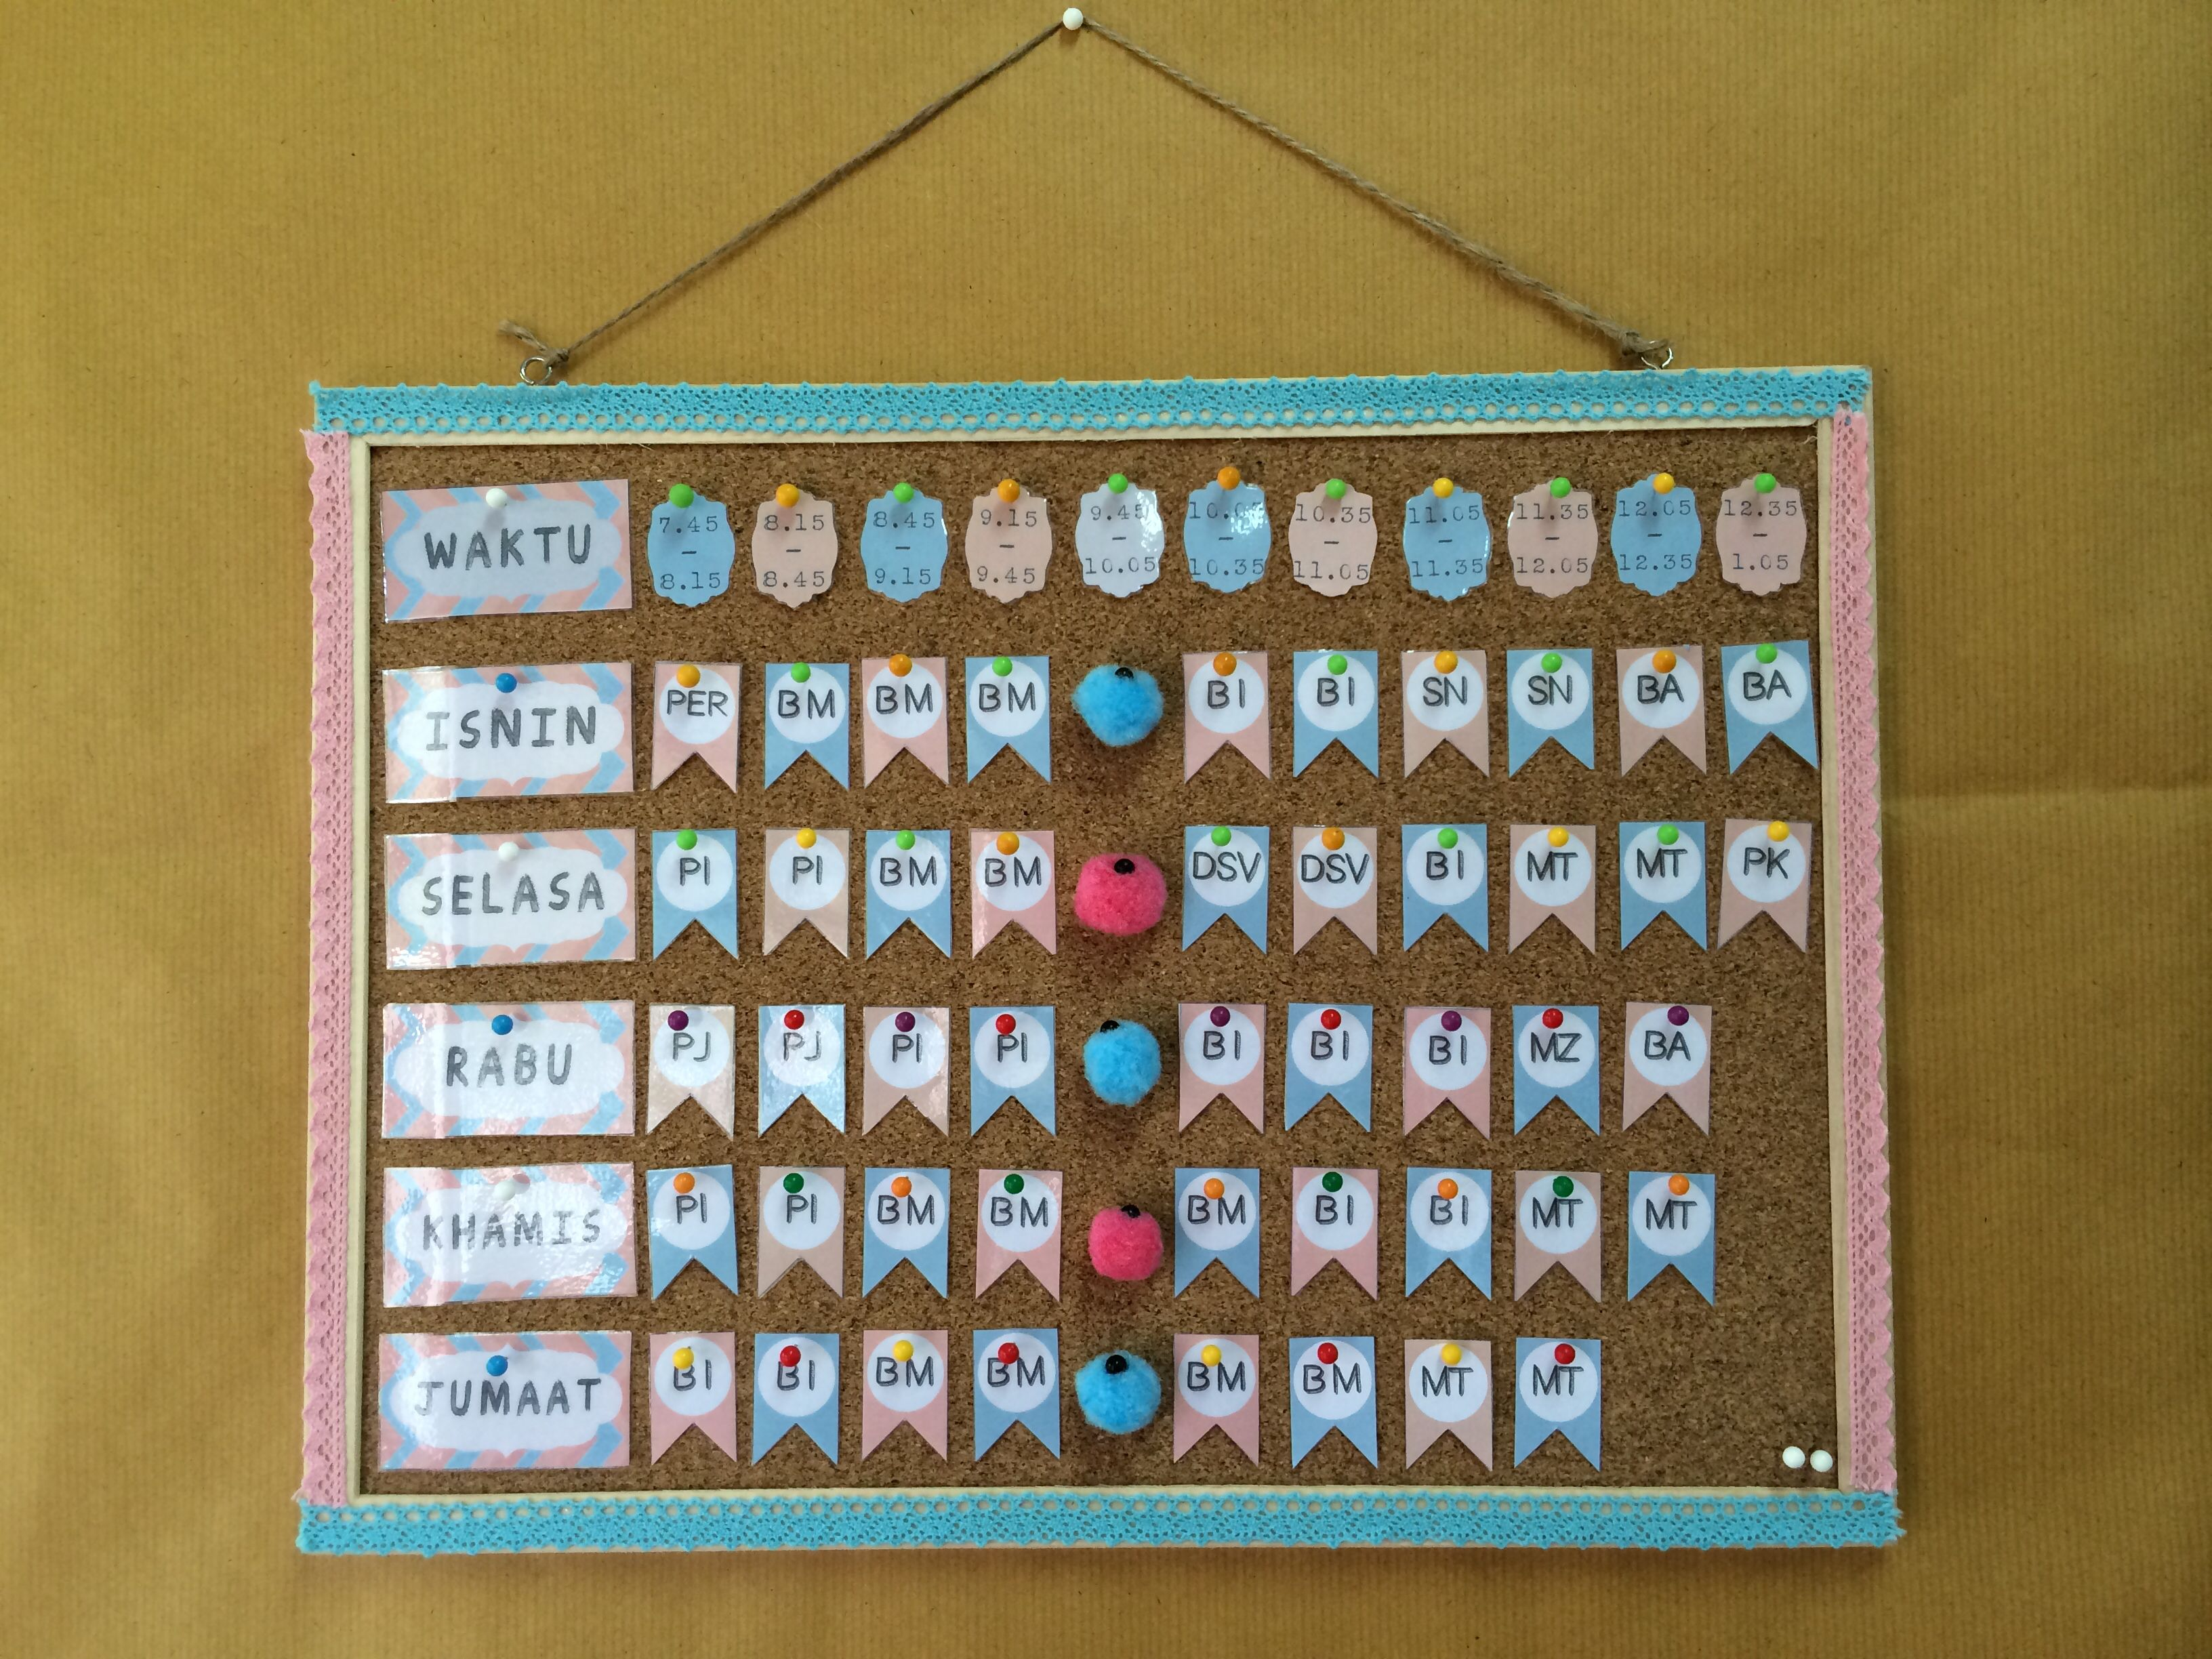 Timetable For My Standard 1 Class Classroom Decoration